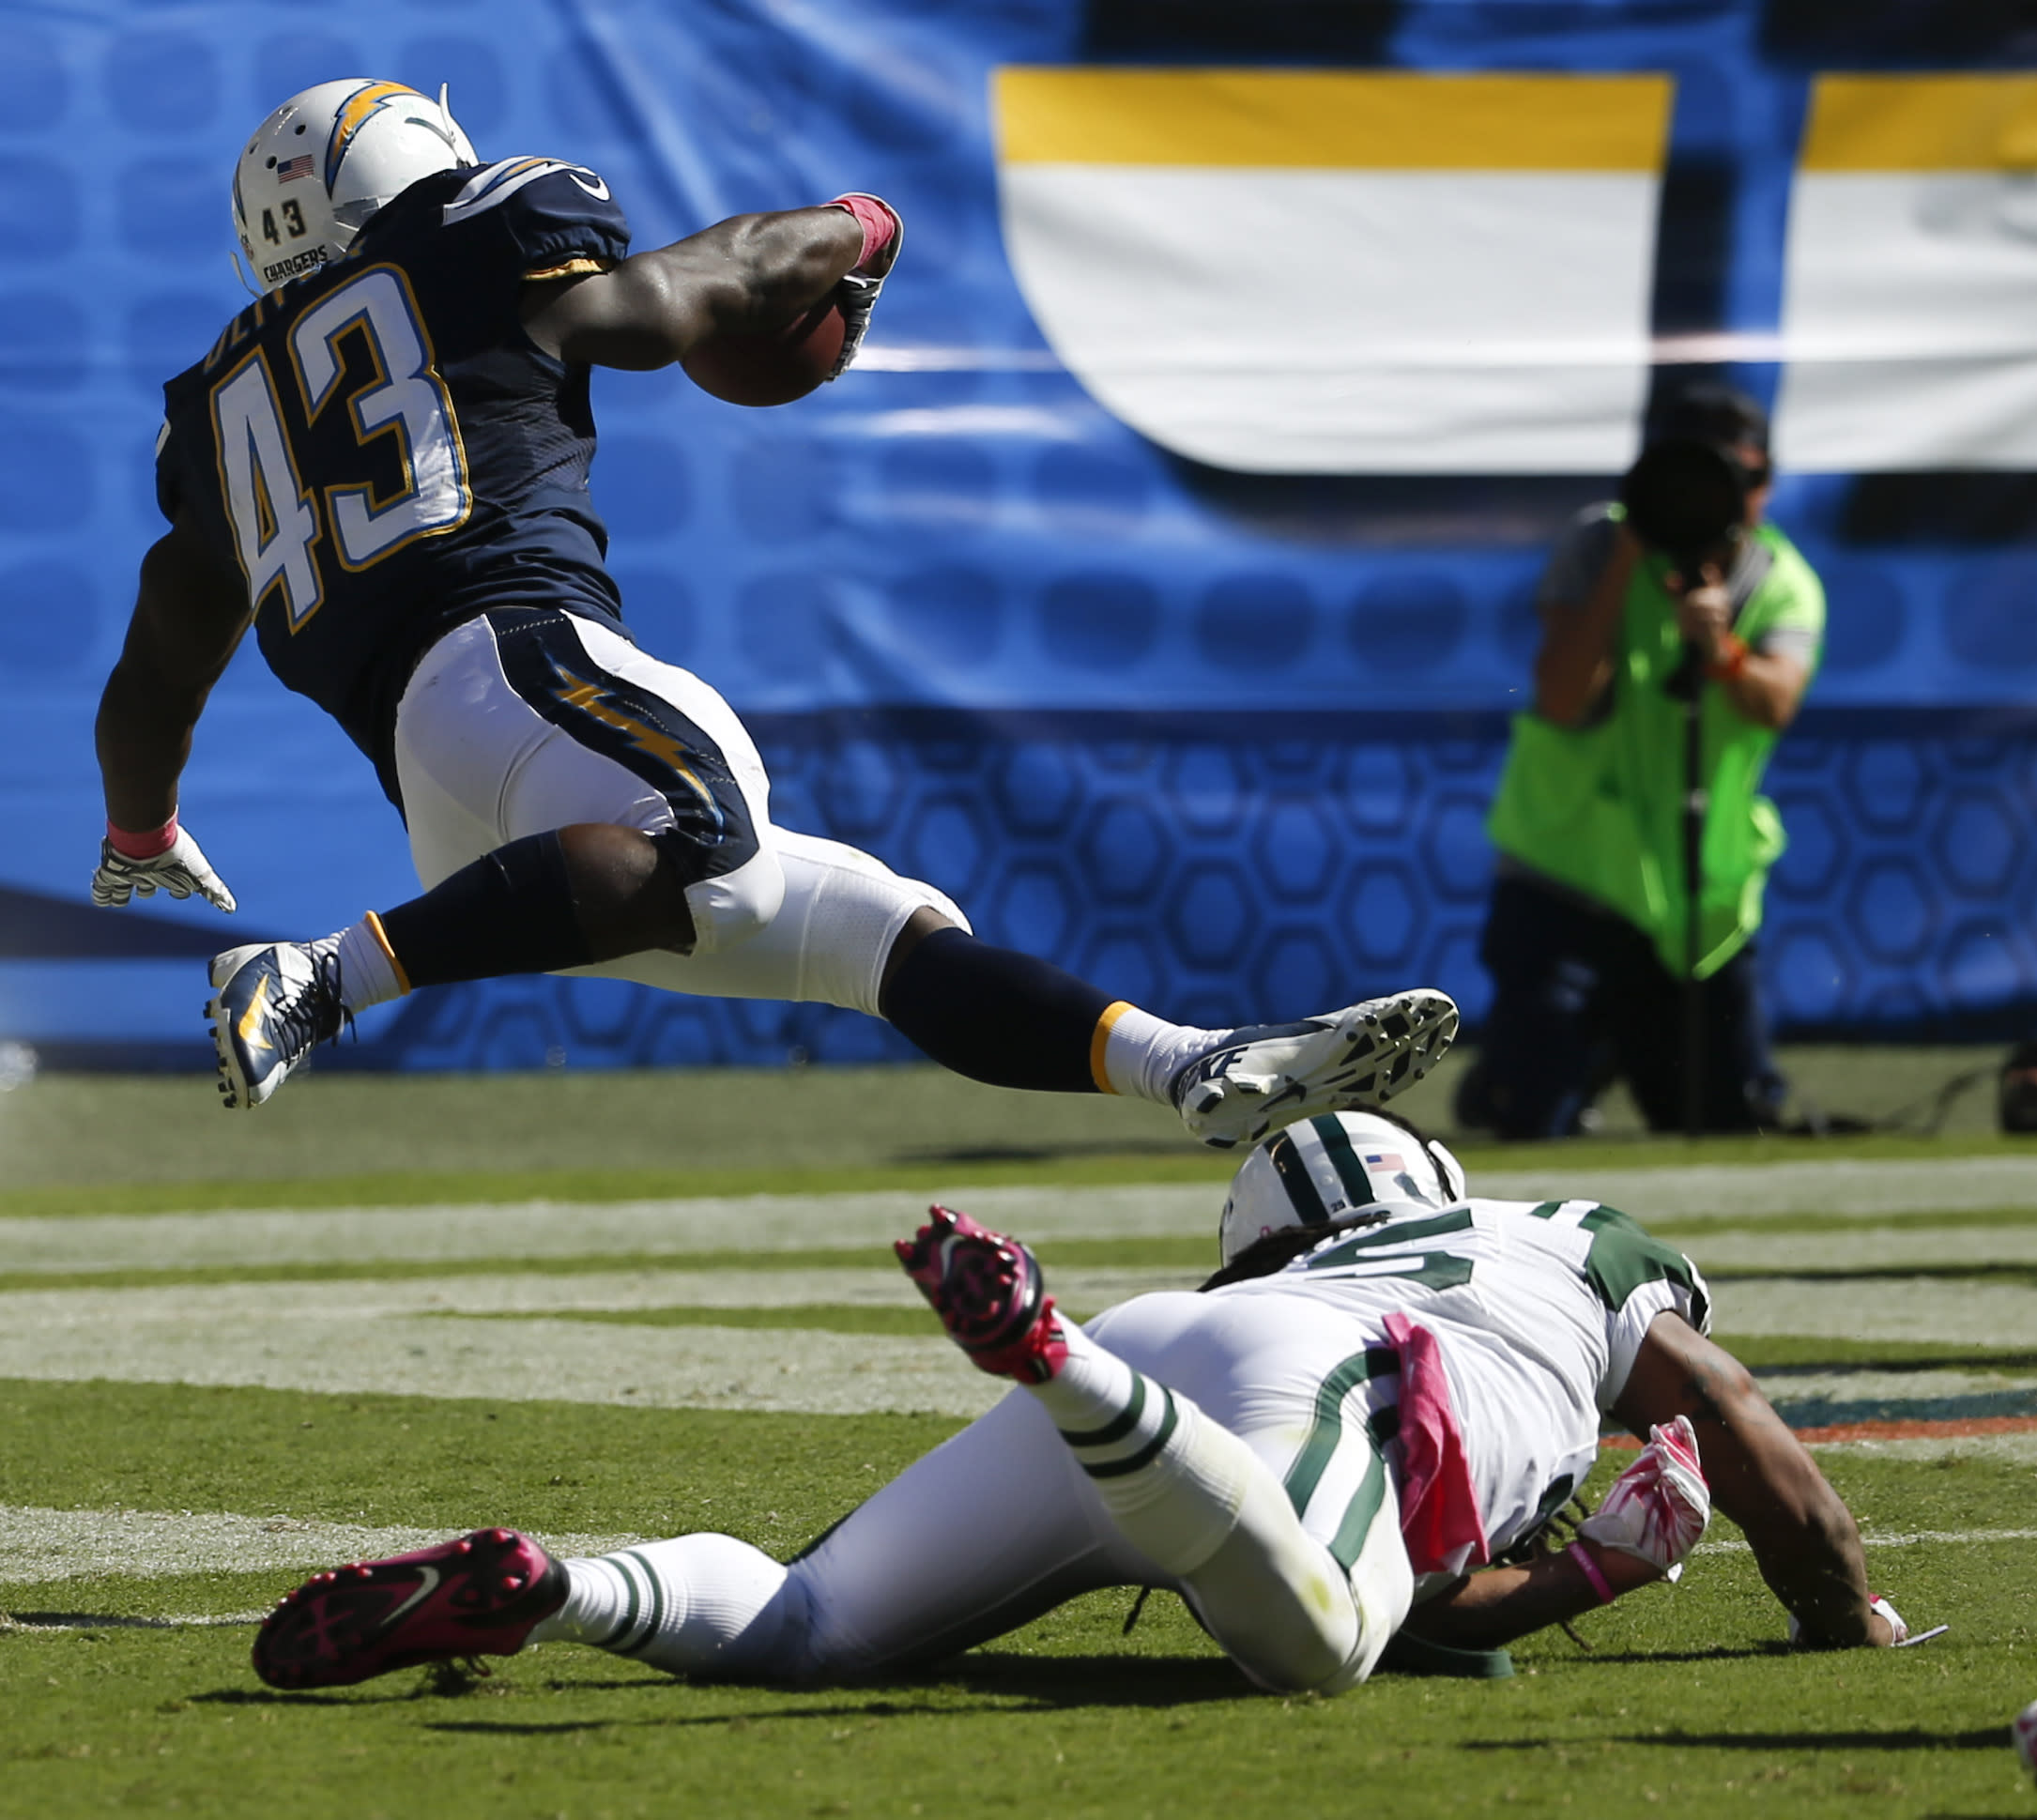 San Diego Chargers Game Score: Rivers, Chargers Race Past Hapless Jets, 31-0